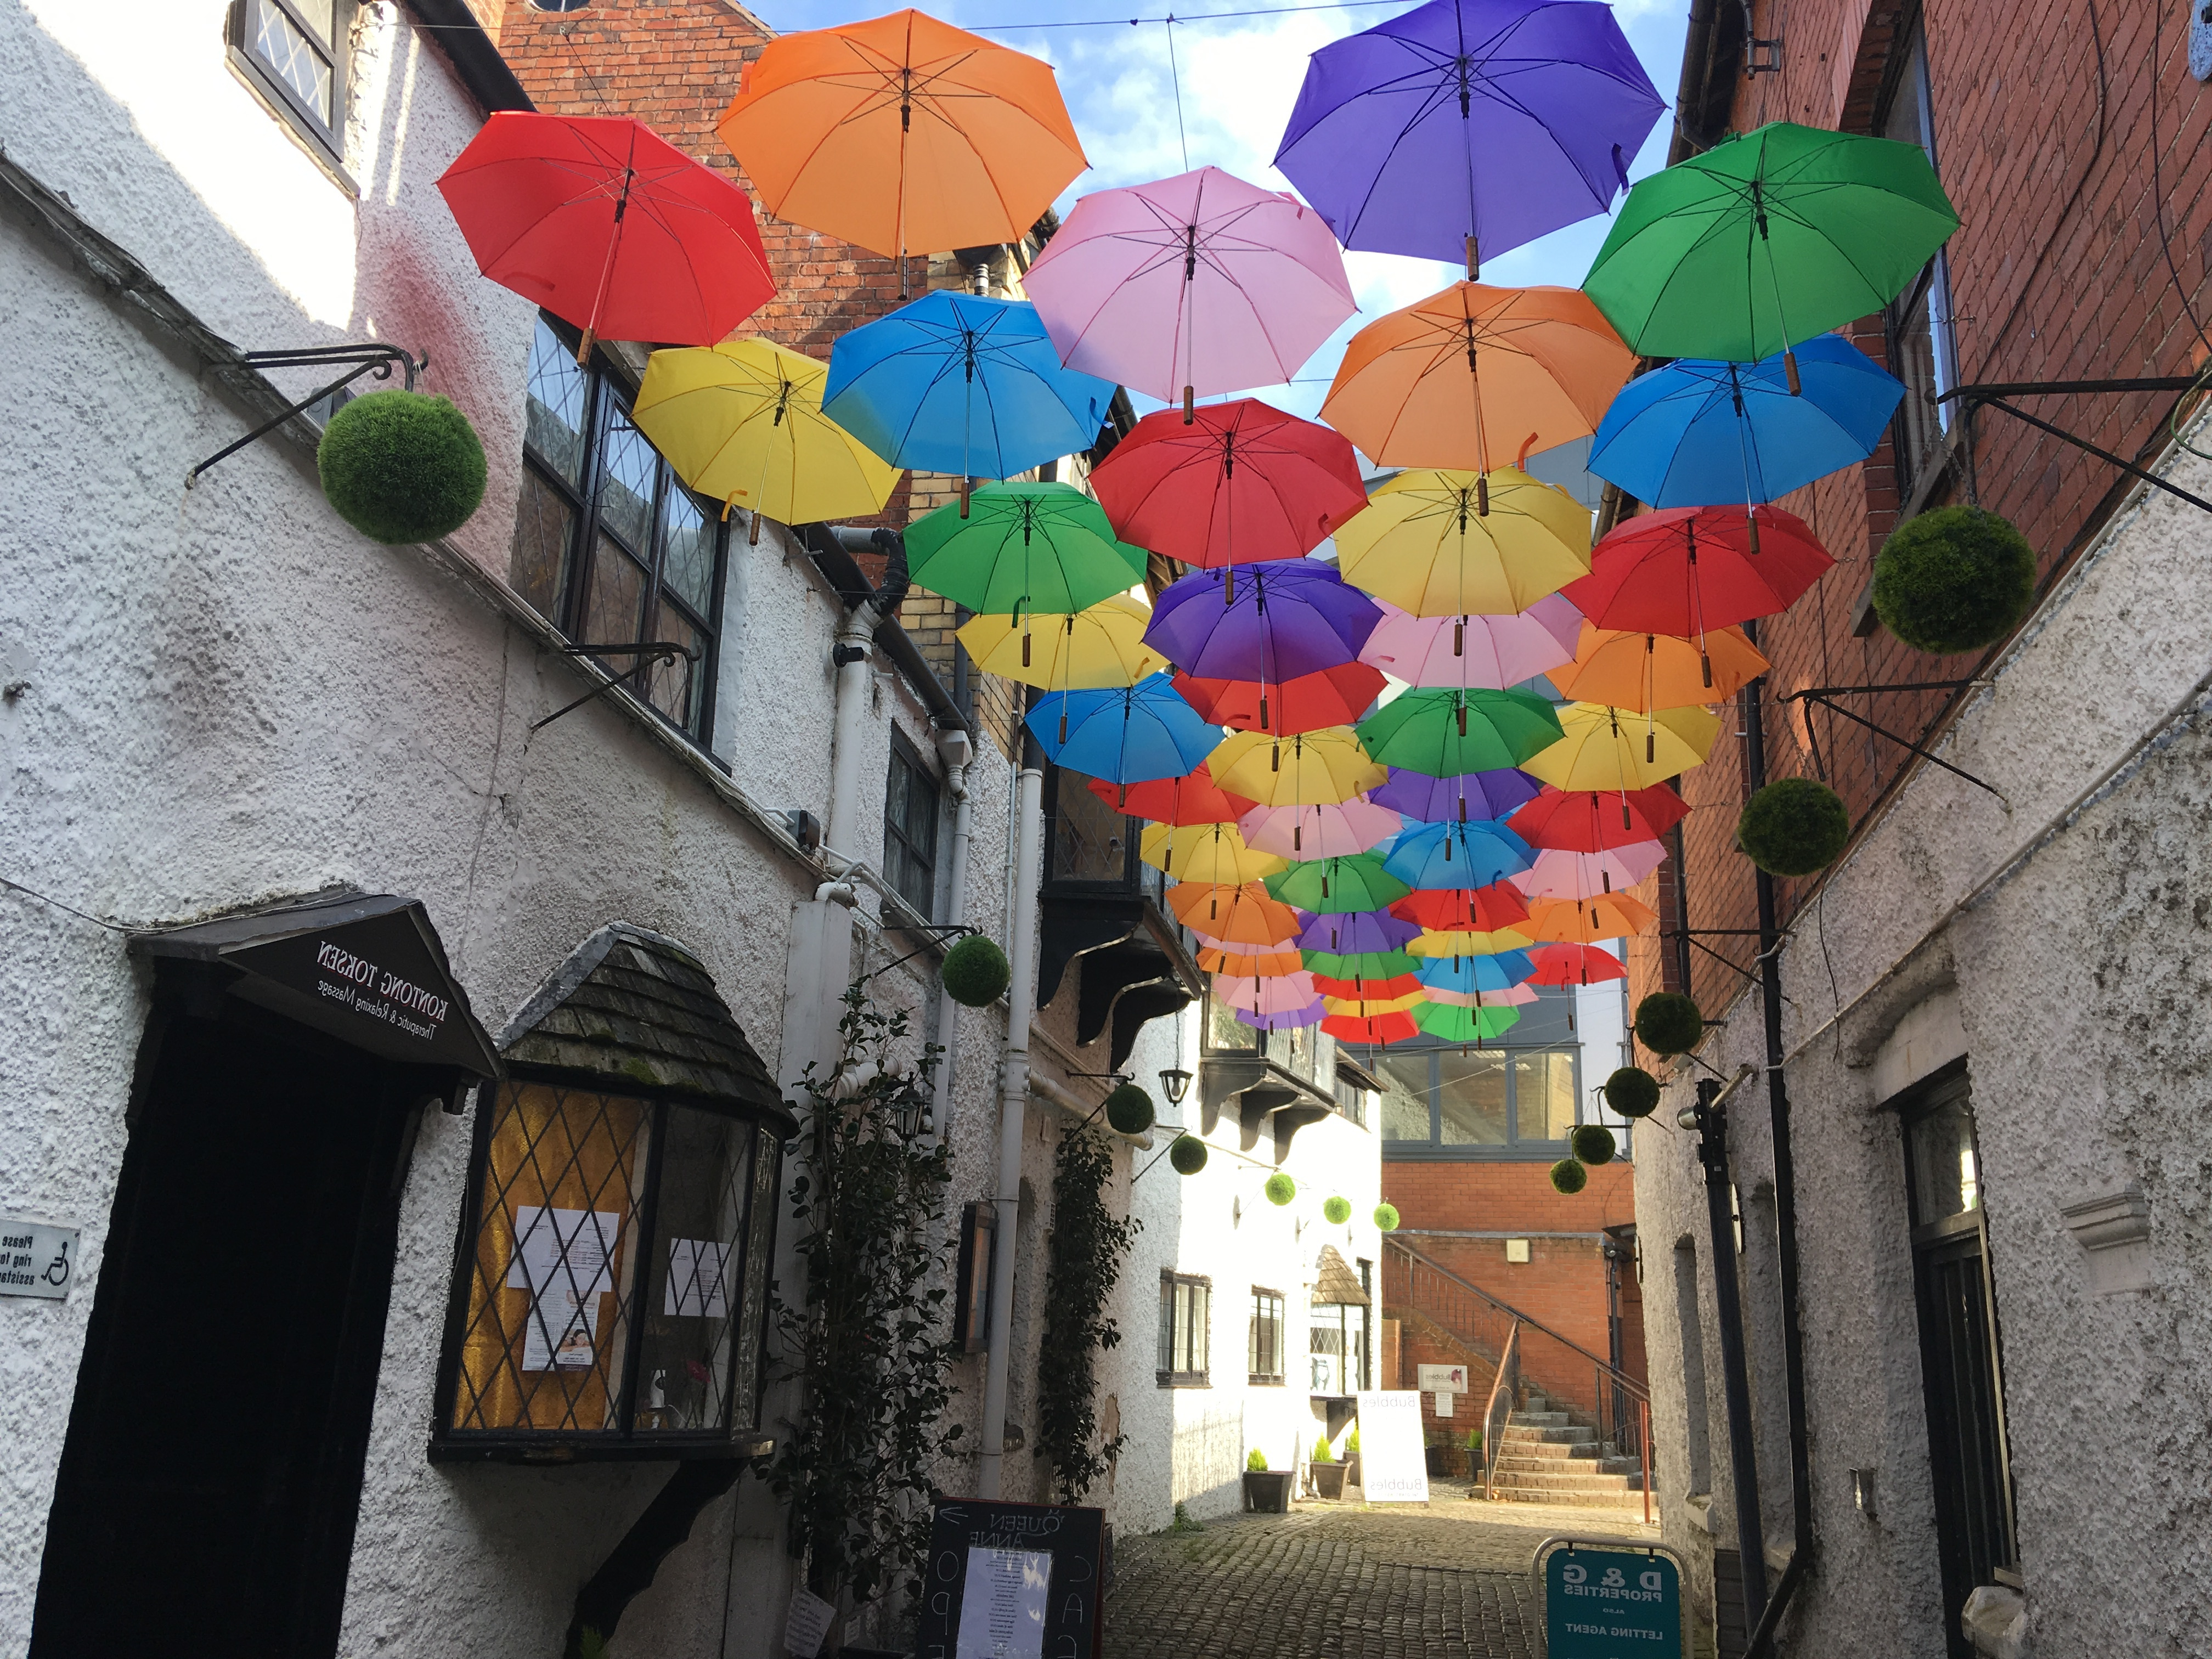 Shropshire Market Umbrellas With Regard To Latest Brollies Brighten Up The Town (View 14 of 20)